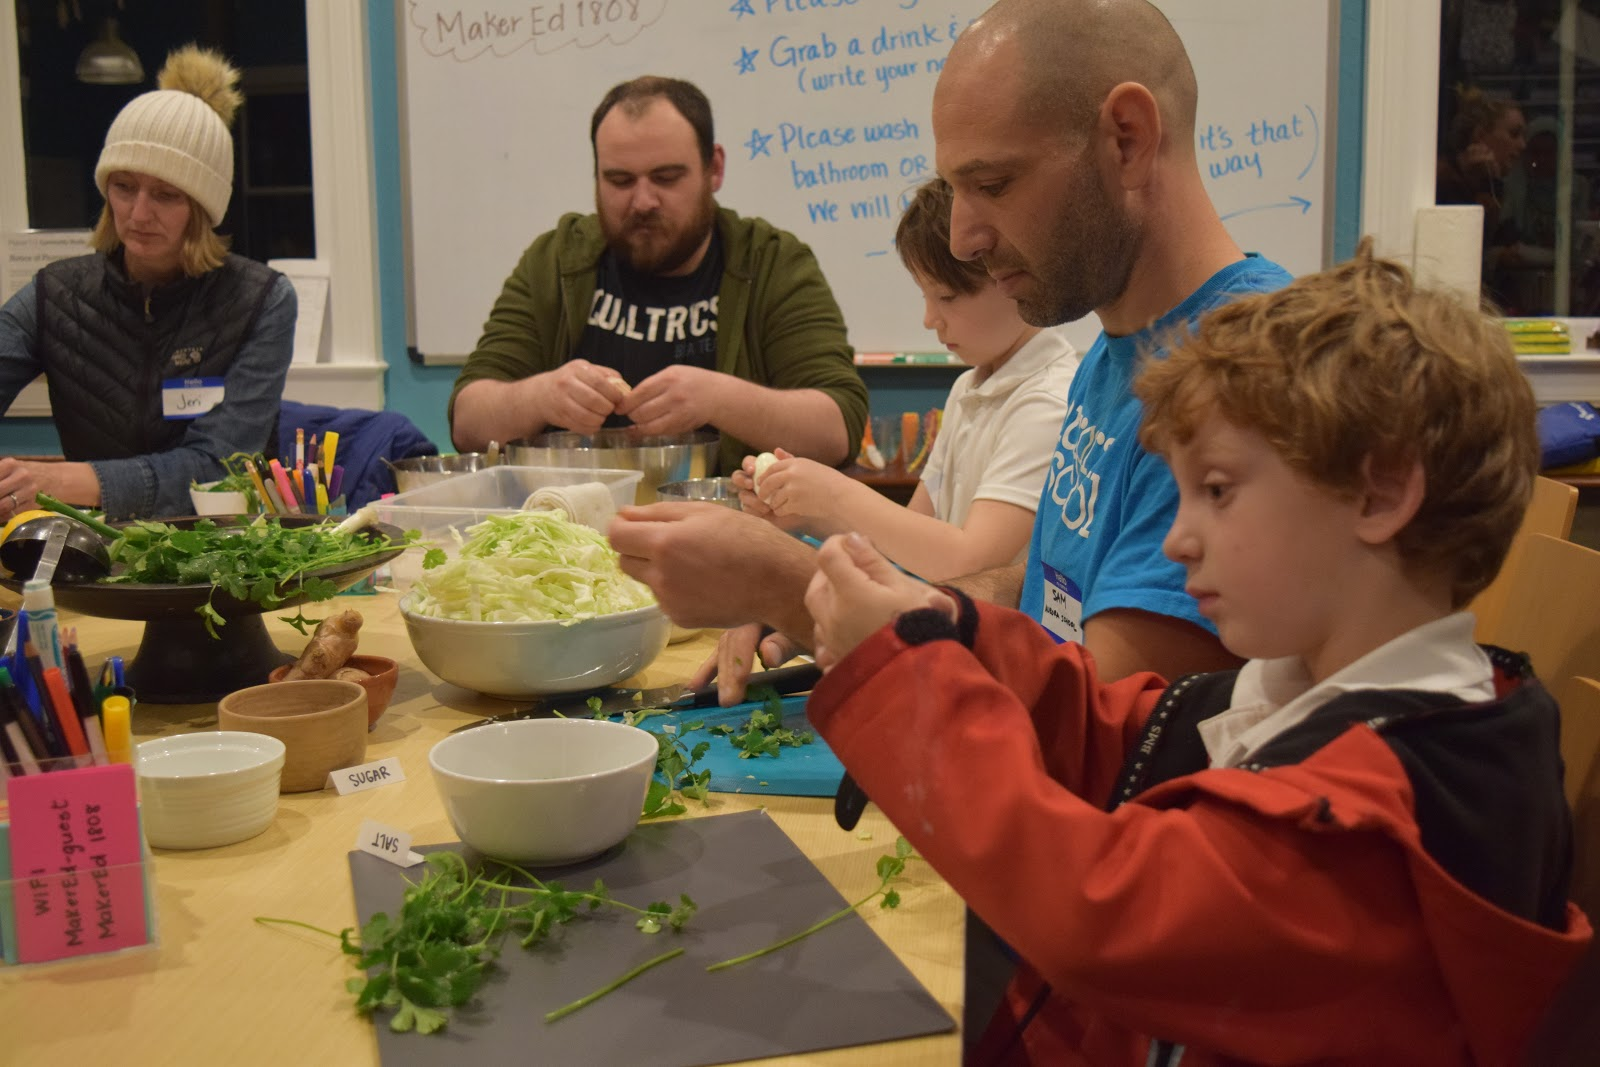 A parent and child prepare vegetables for cooking at the Maker Ed Community Studio.